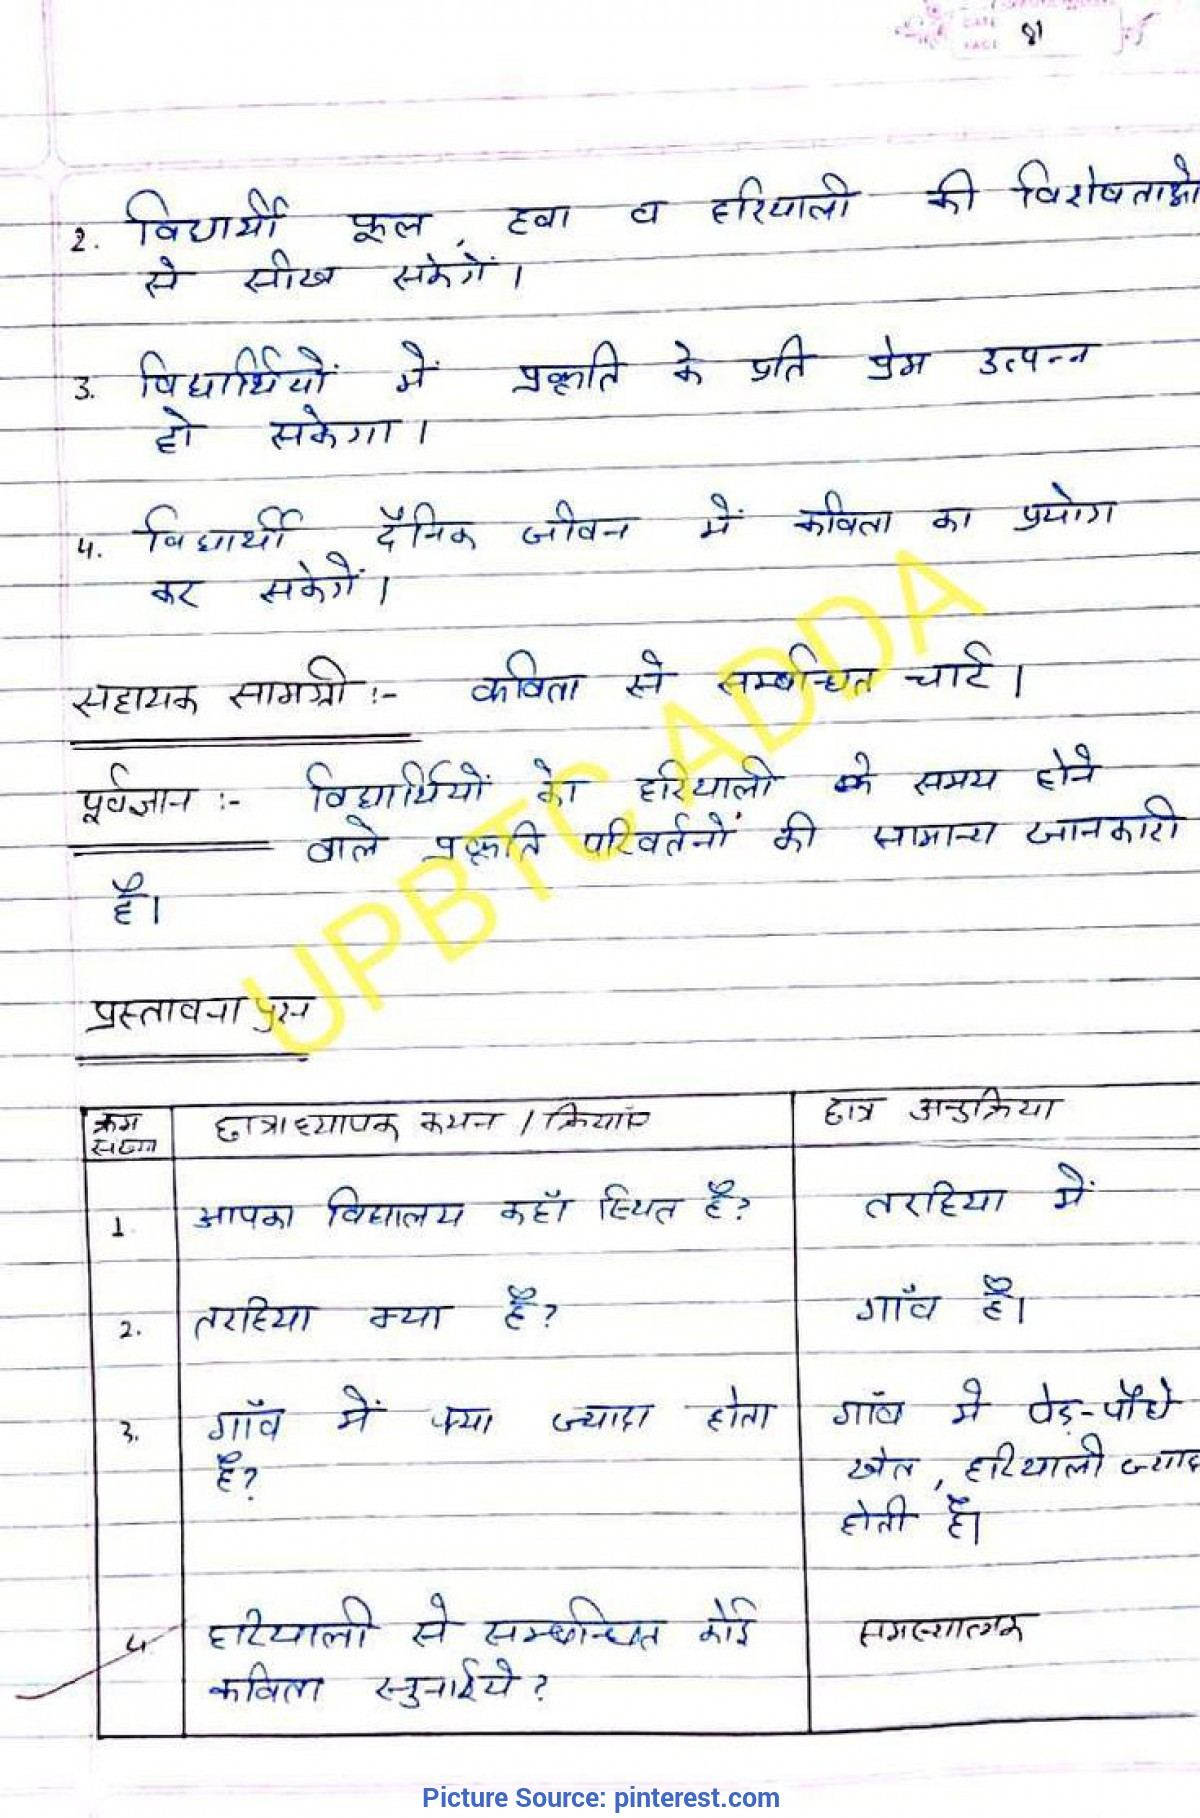 Special 5E Lesson Plan In Hindi 7 Best Lesson Plan Images On Pinterest | Lesson Planning, Lesso